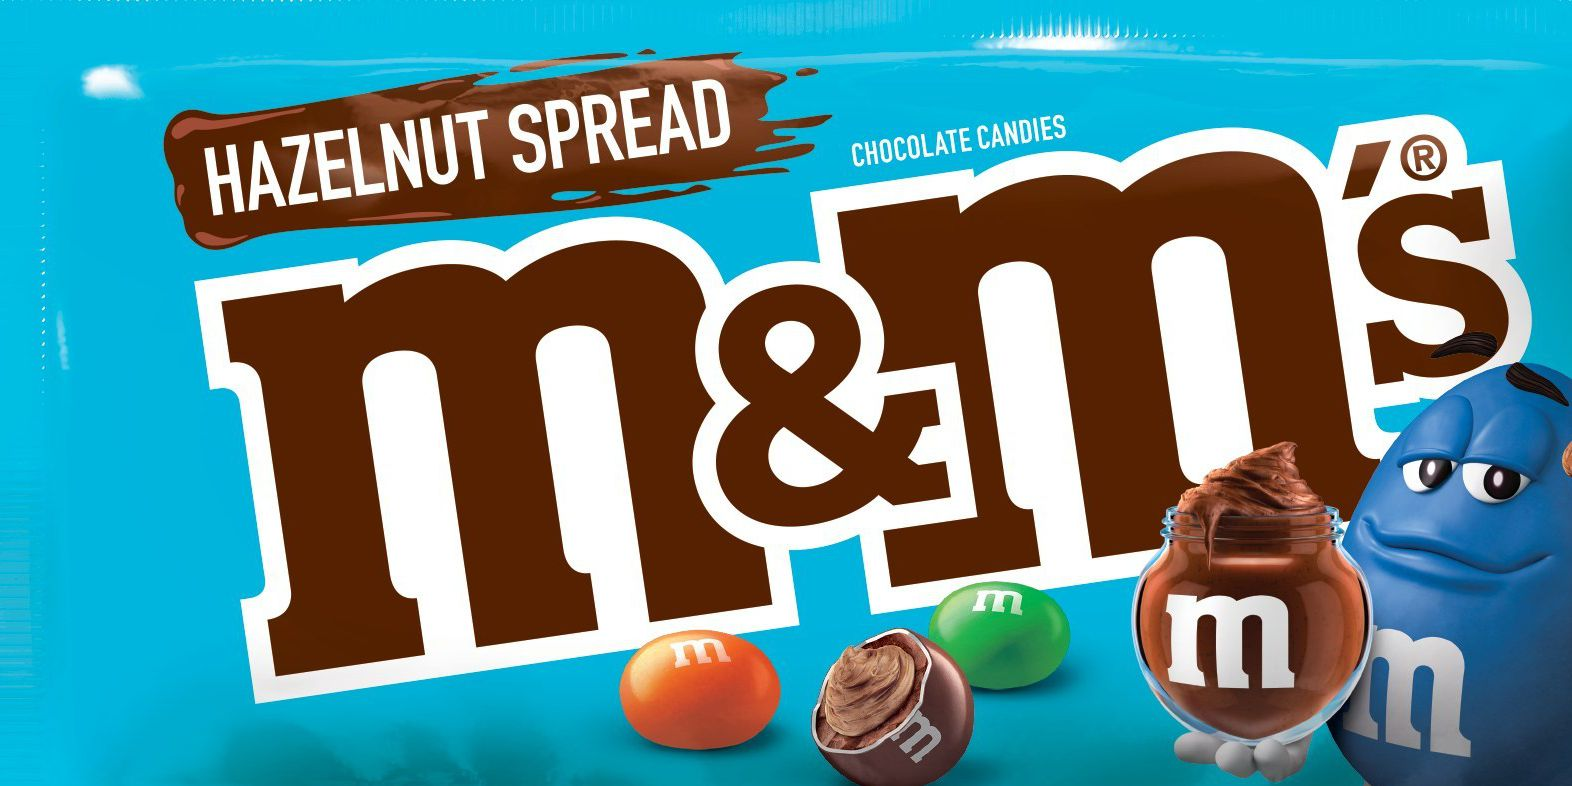 Hazelnut spread M&M's are just about out, but you can win them early